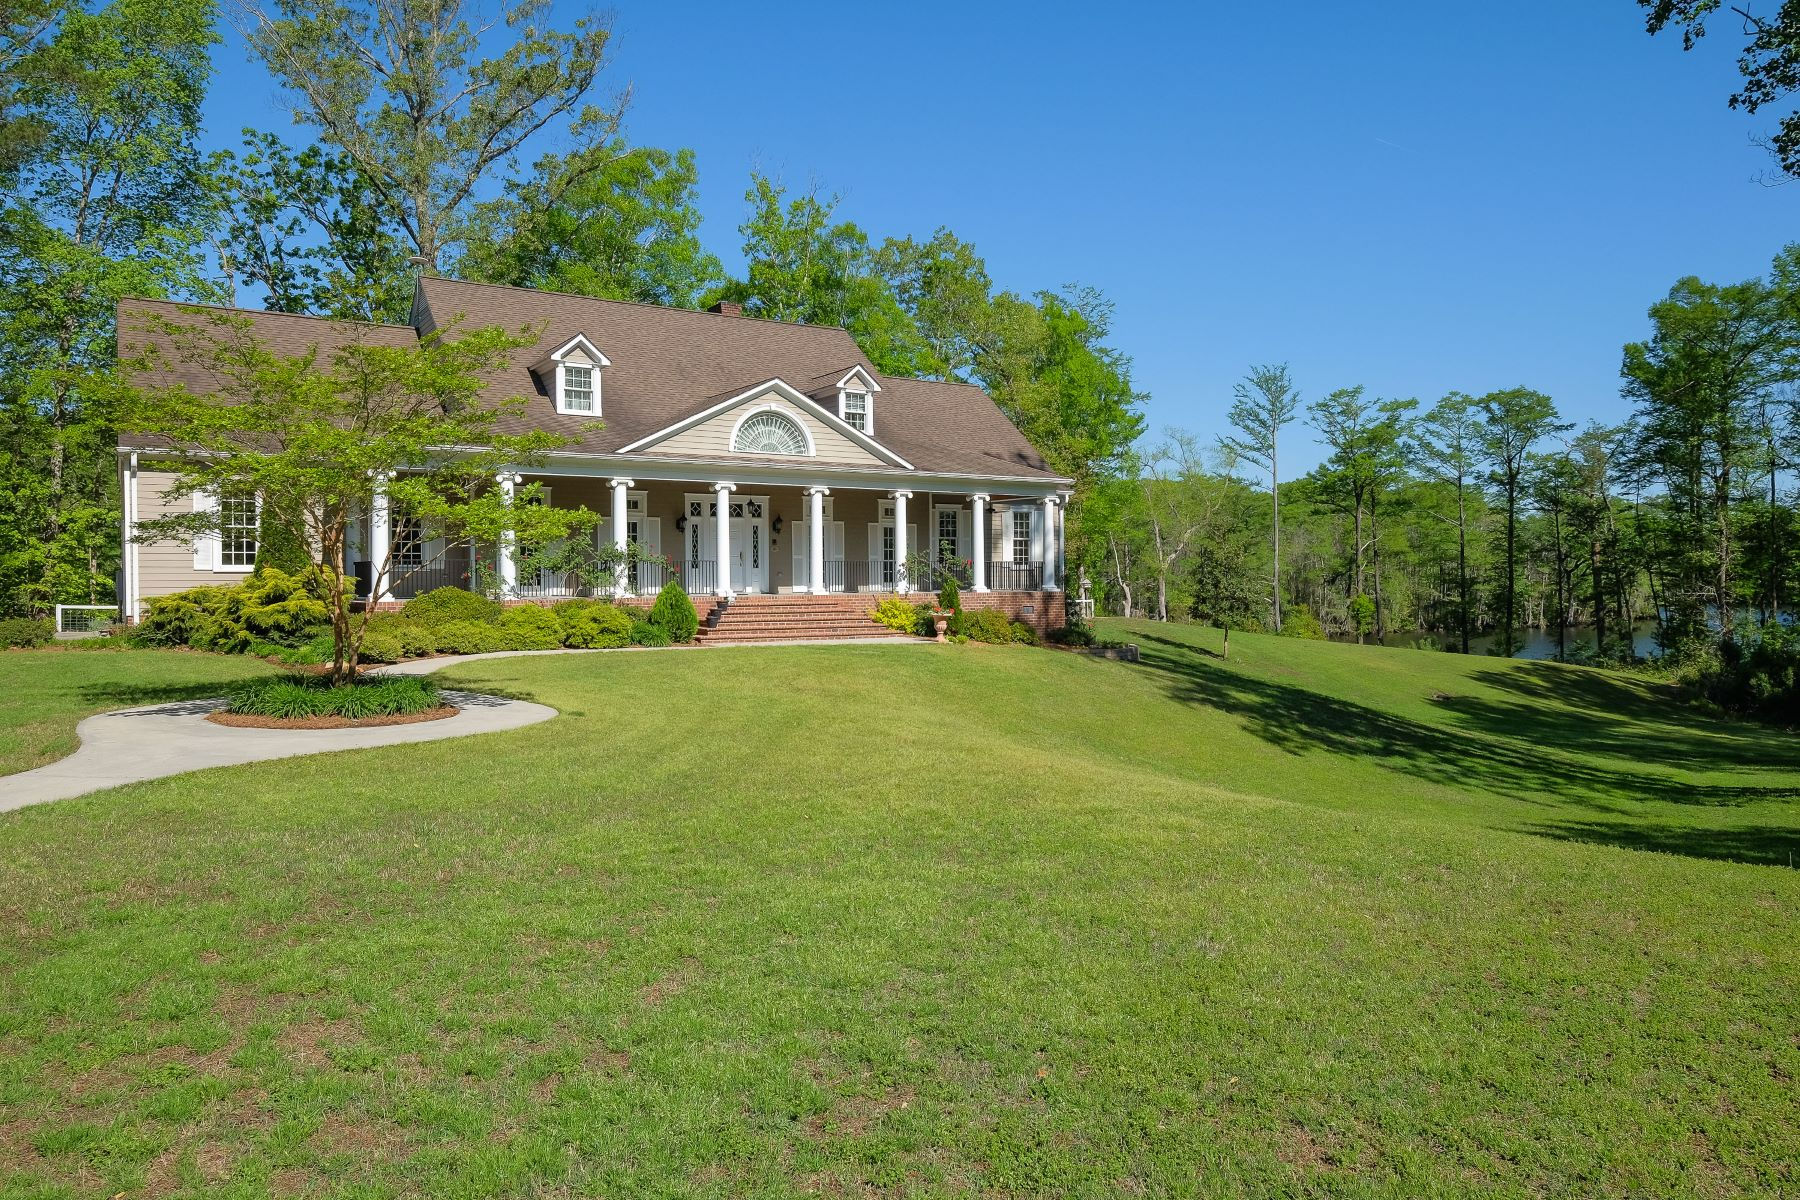 Single Family Home for Sale at Private Waterfront Retreat 139 Salmon Creek Merry Hill, North Carolina, 27957 United States